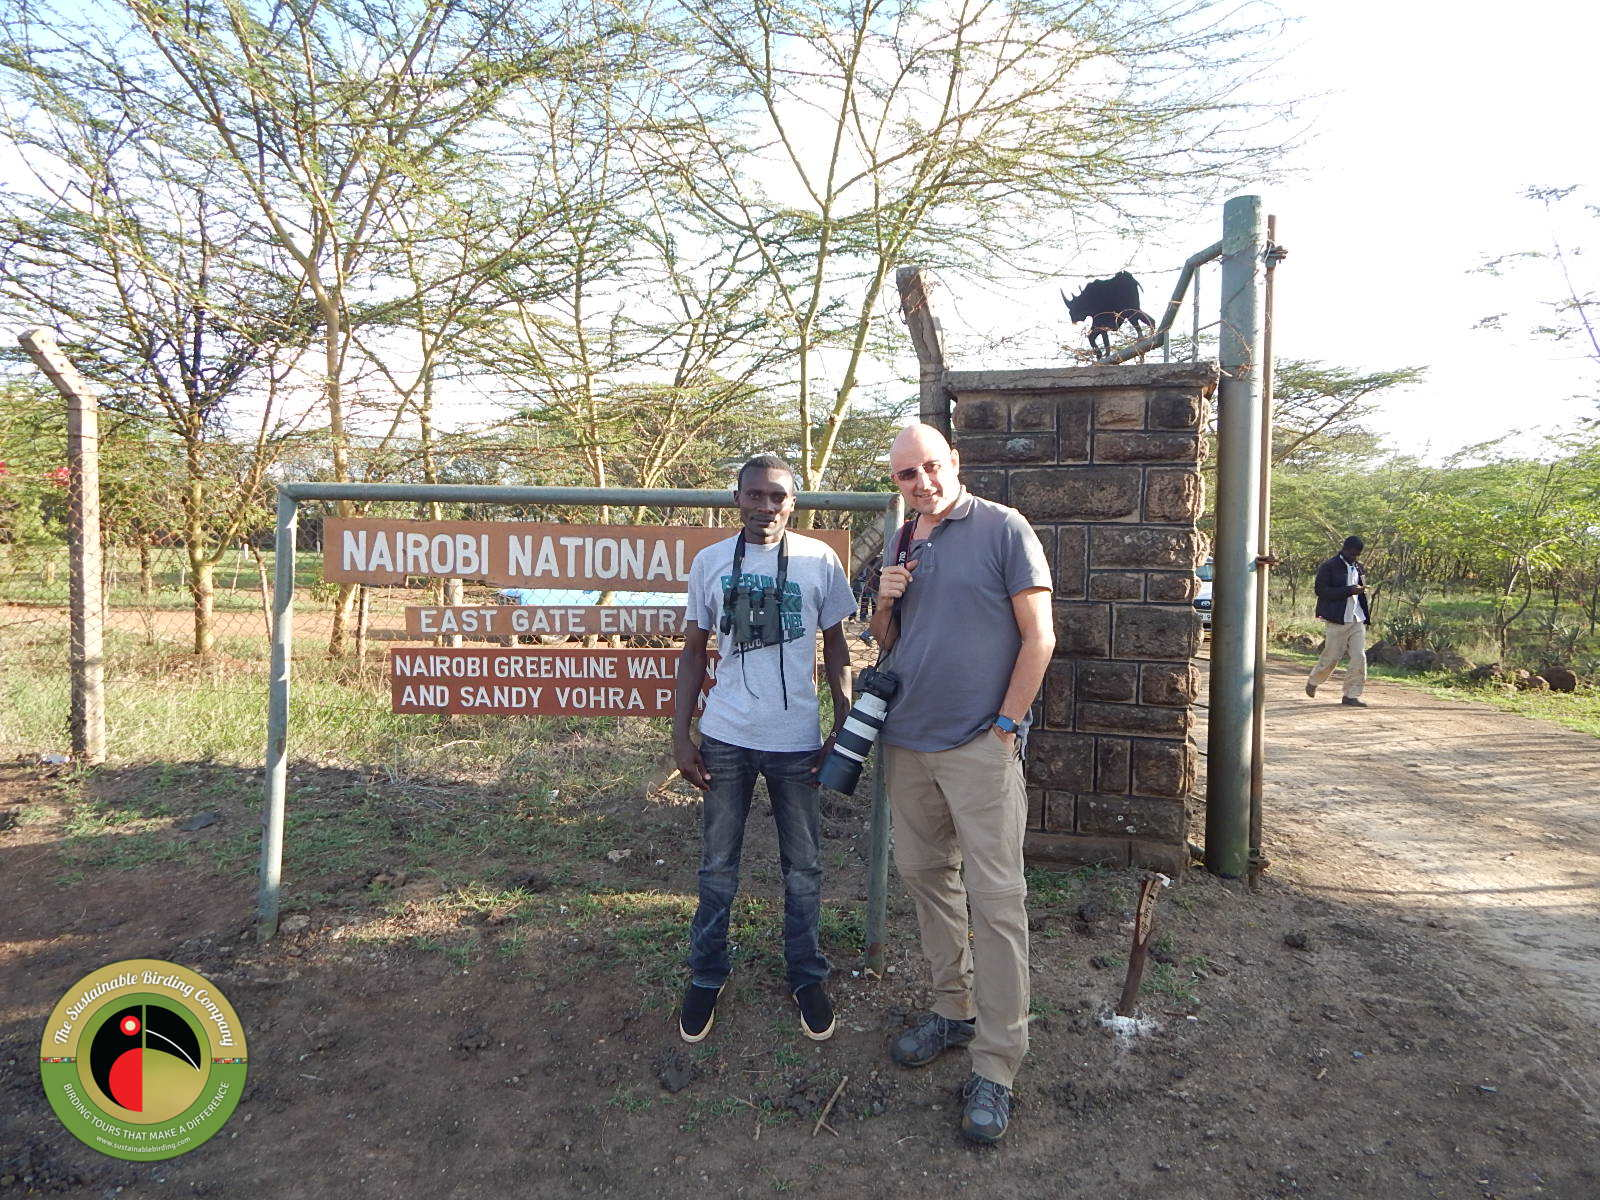 Our 1 Day Nairobi National Park Birding Tour